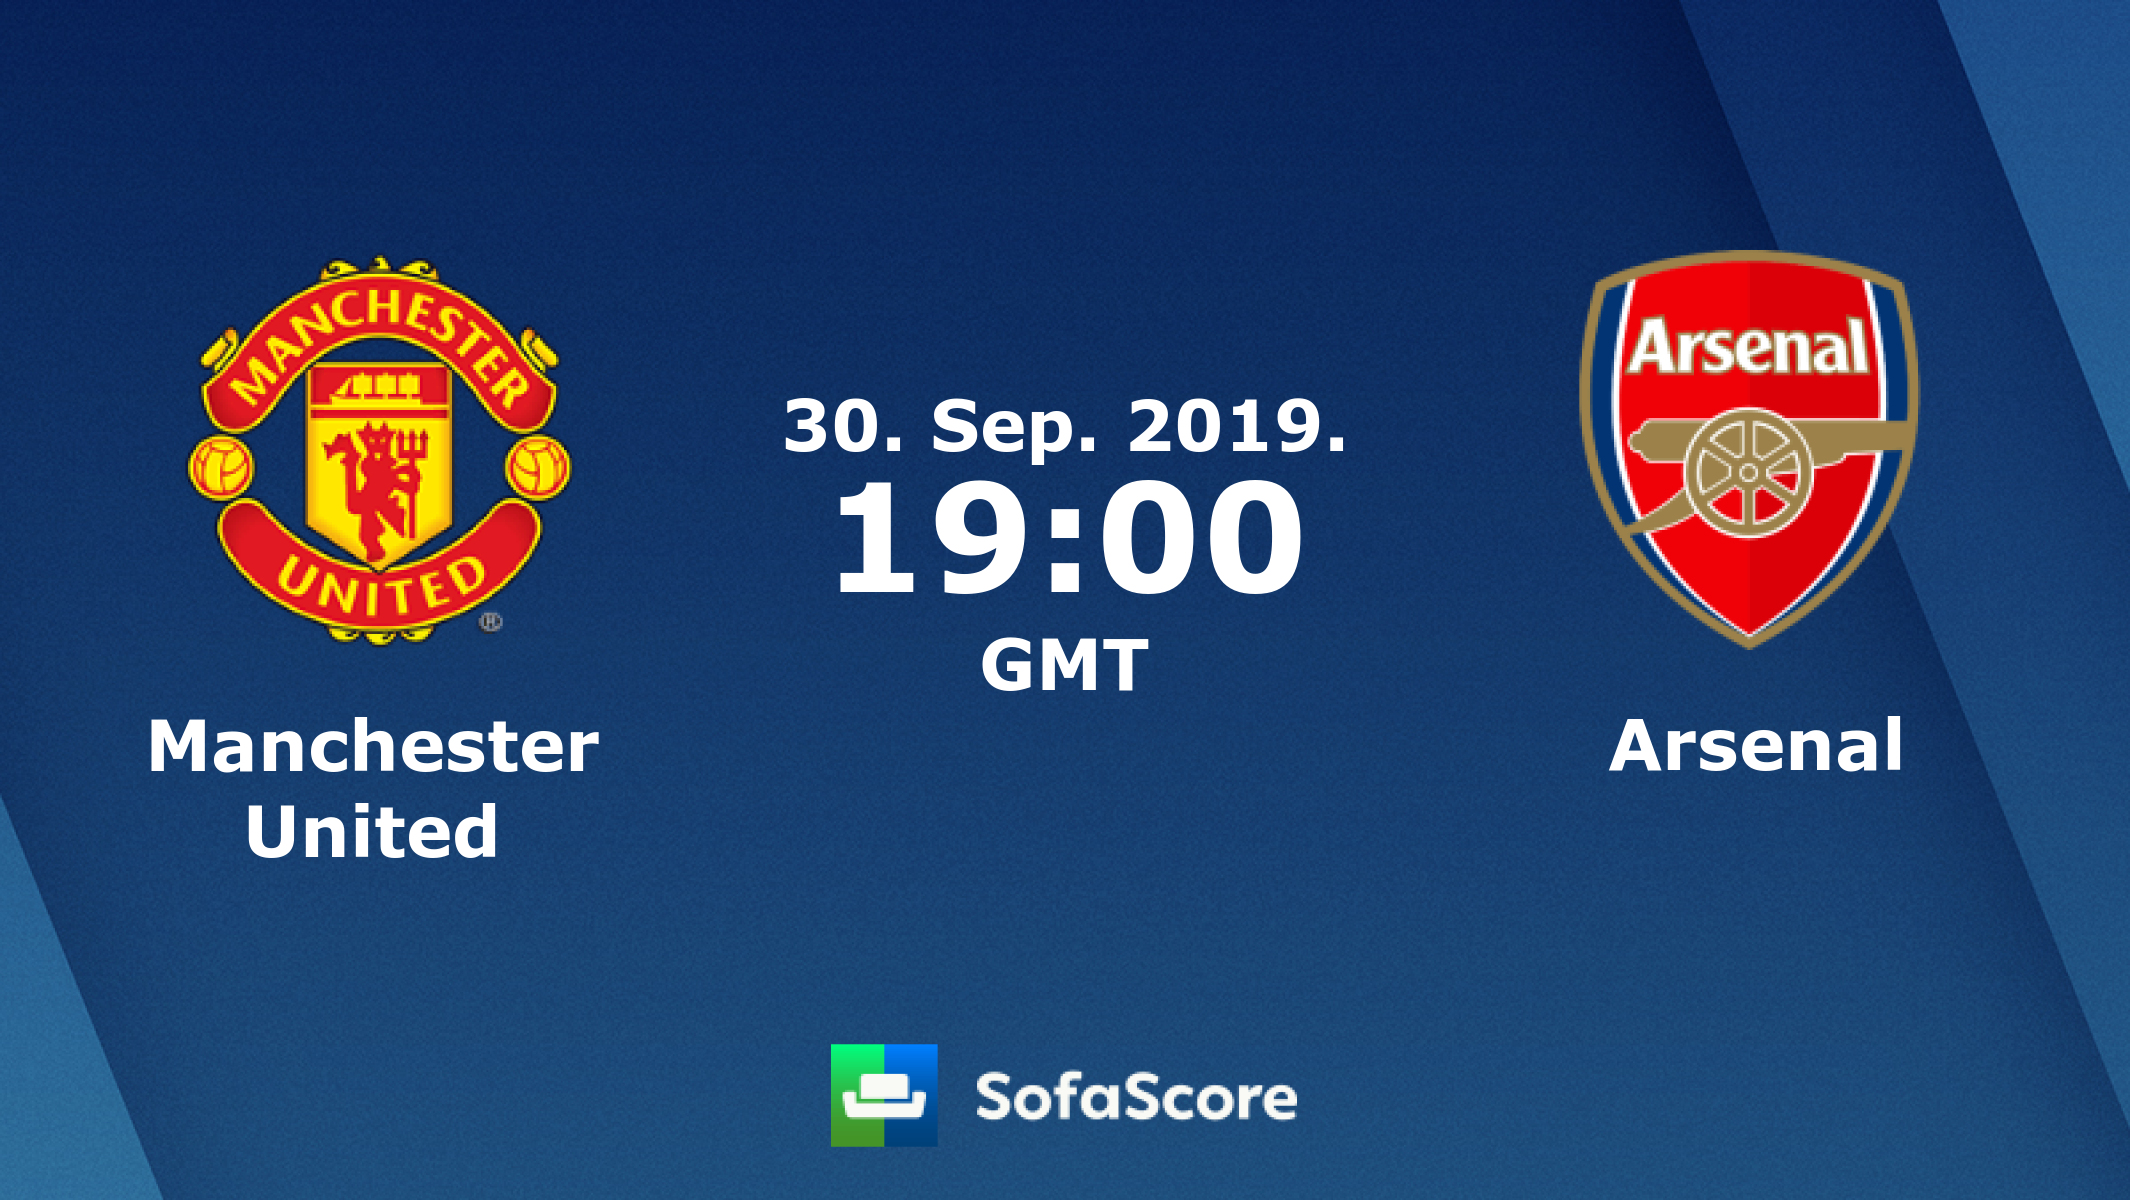 Manchester United Arsenal live score, video stream and H2H results